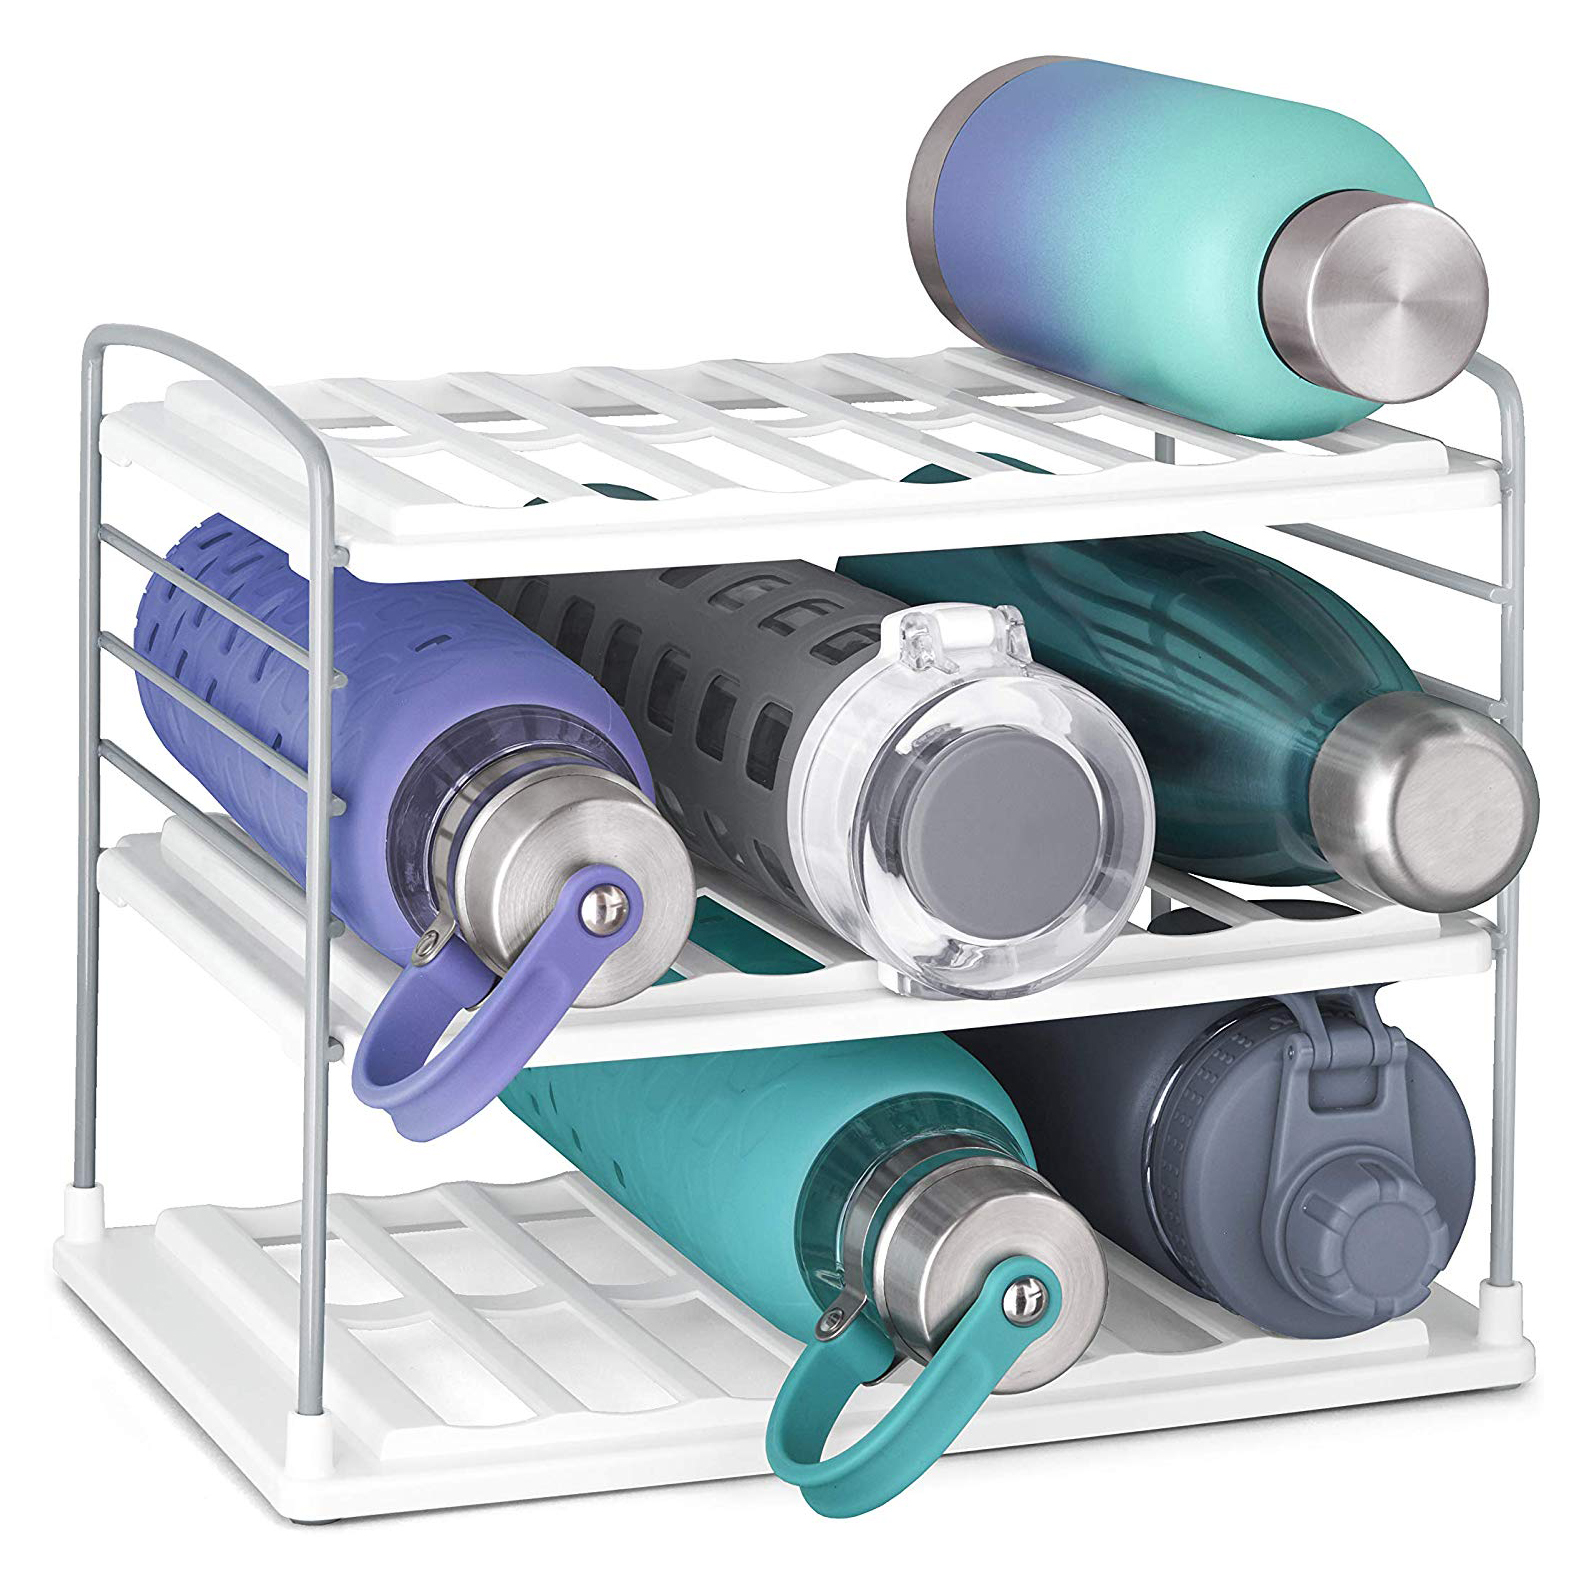 YouCopia 50243 UpSpace Water Bottle Organizer